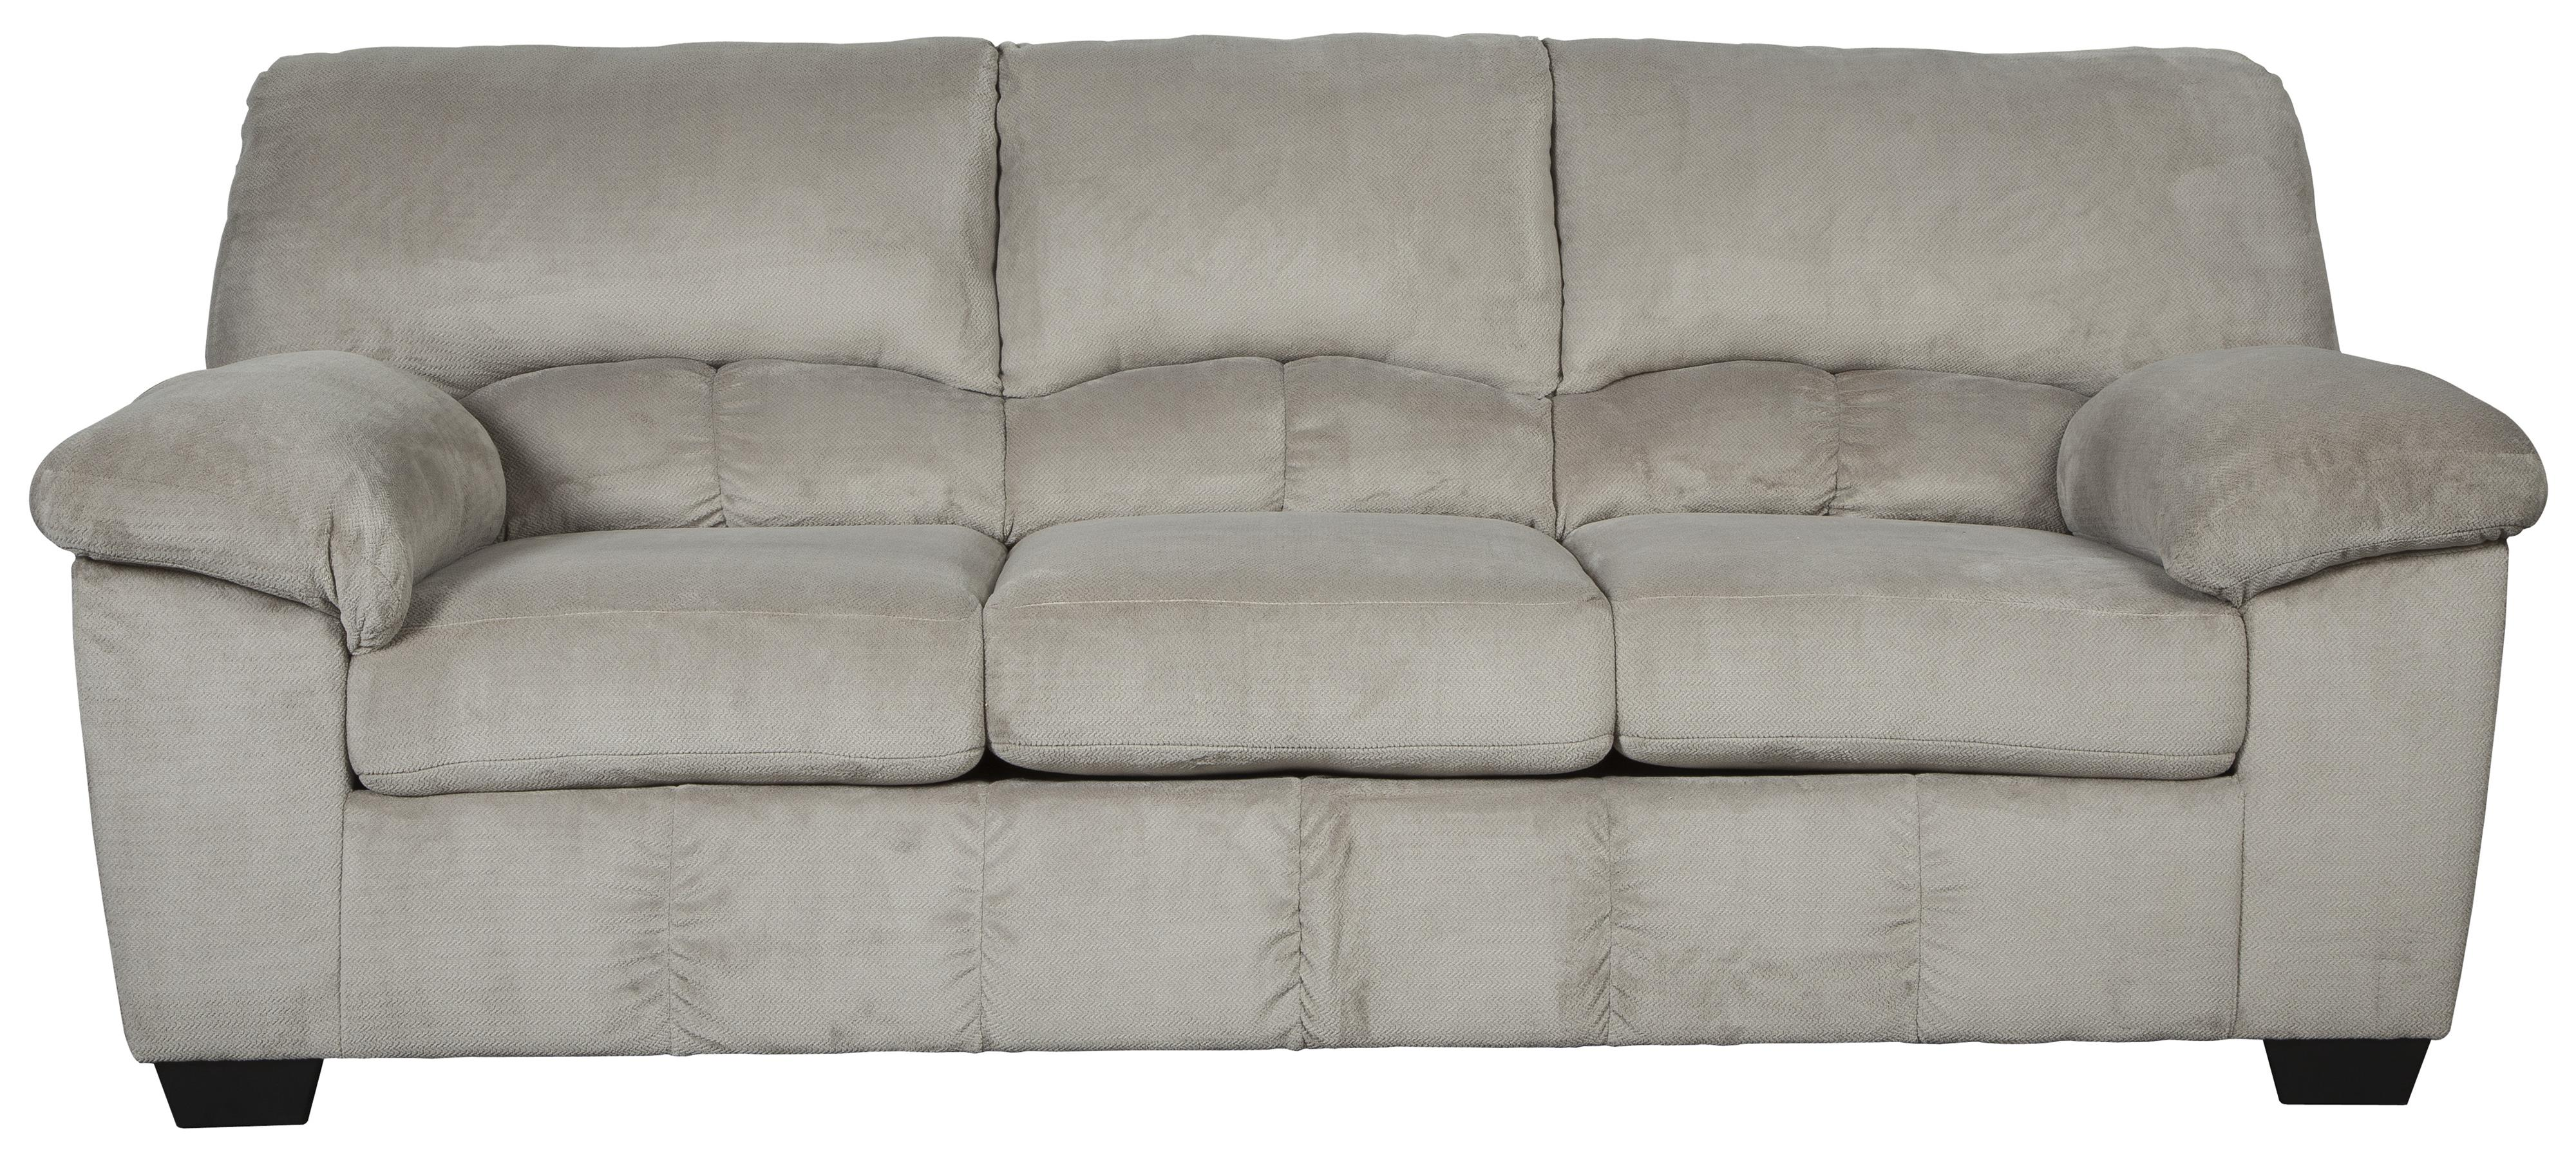 Signature Design by Ashley Dailey Full Sofa Sleeper - Item Number: 9540136